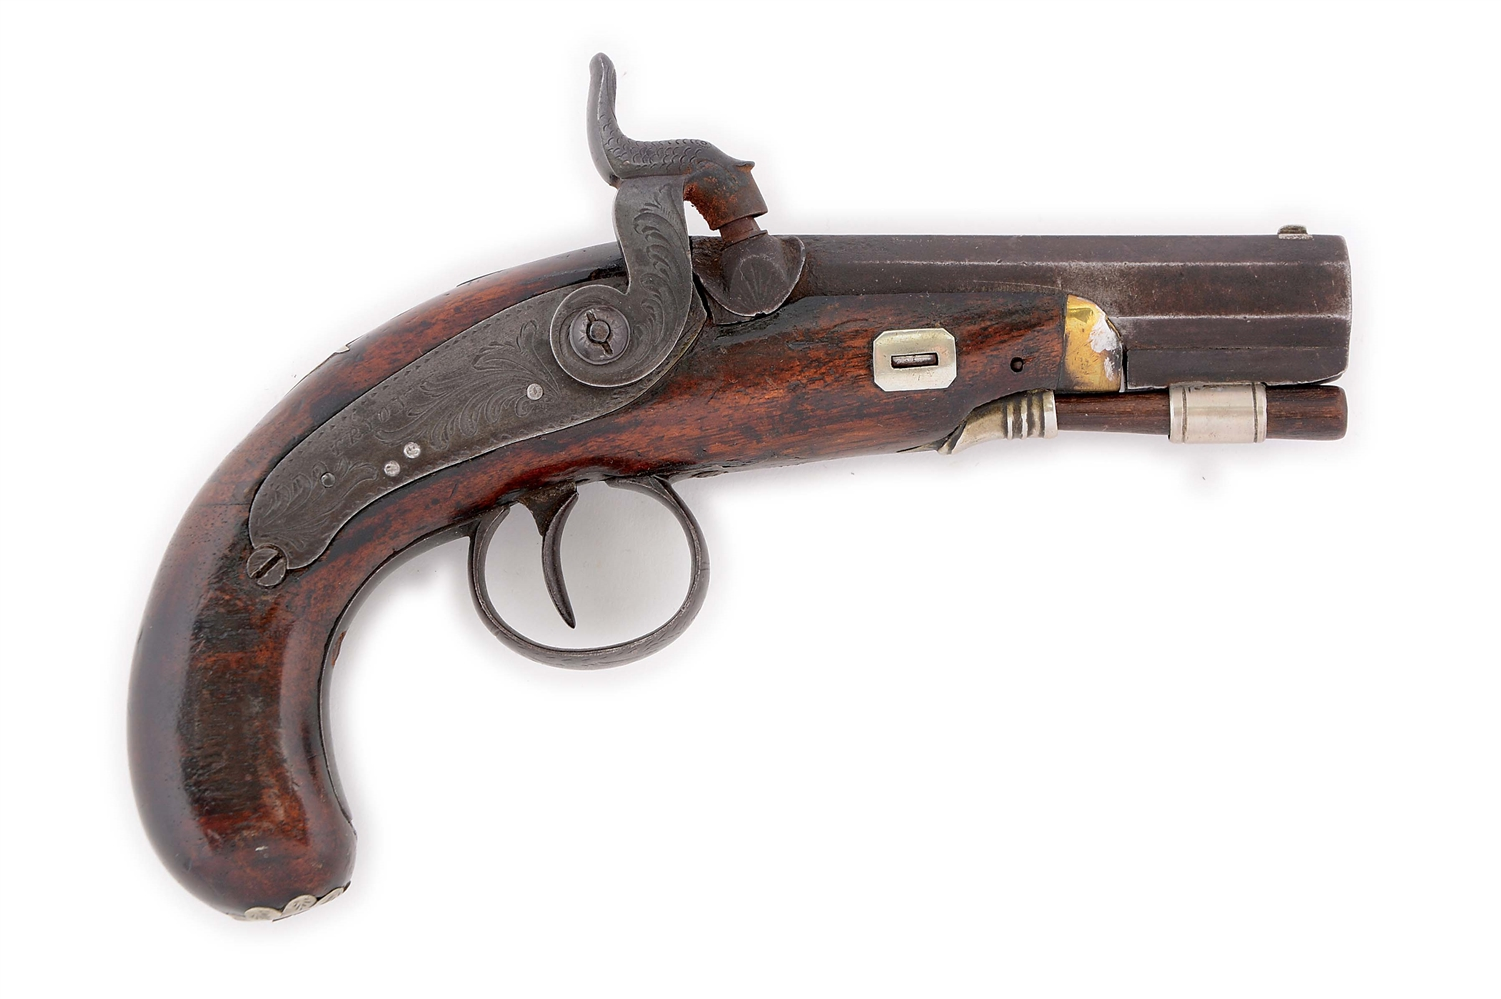 (A) RARE CONFEDERATE AGENT MARKED DERINGER STYLE PISTOL BY TRYON, PHILADELPHIA, FOR HYDE & GOODRICH, NO. CIRCA 1850.